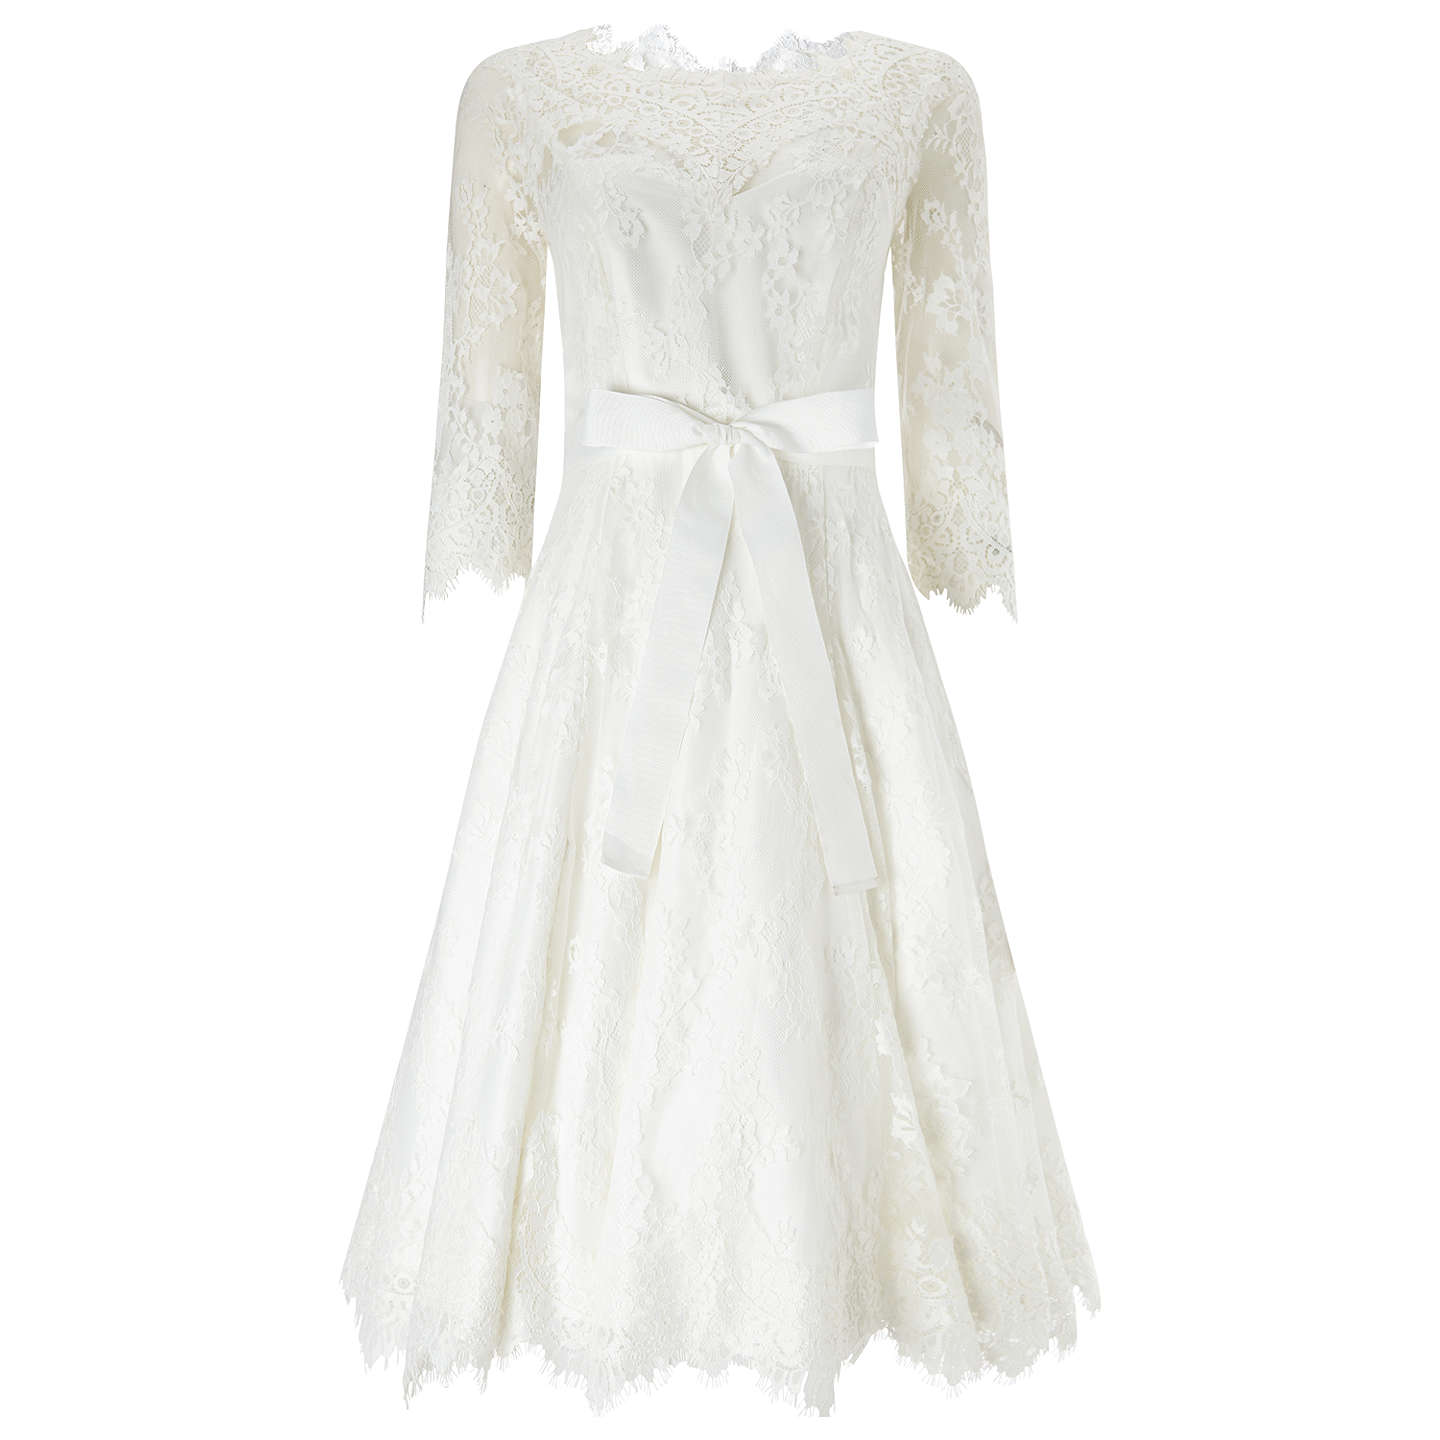 Phase eight bridal cressida wedding dress ivory at john lewis for Phase eight wedding dresses